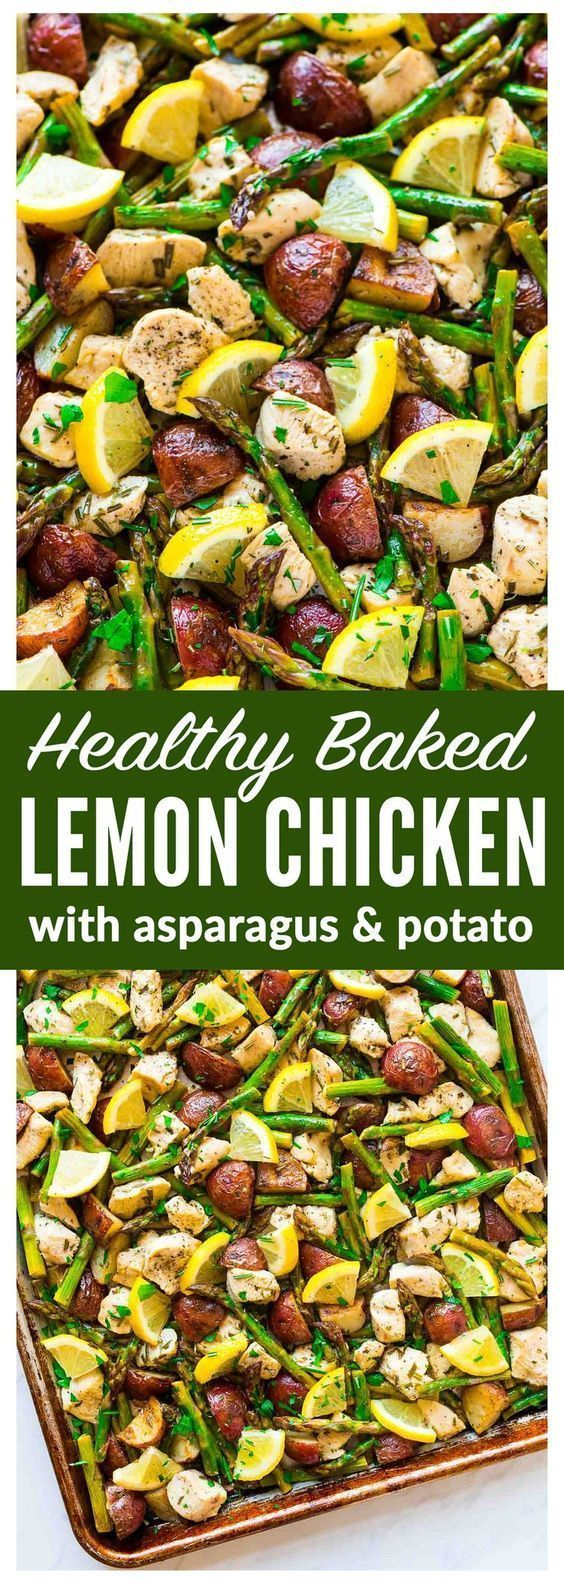 Easy, healthy Baked Lemon Chicken with Garlic and Rosemary. Add asparagus and potatoes for a DELICIOUS sheet pan meal that's perfect for busy weeknights! The veggies are crispy, the chicken juicy, and the flavors so fresh. Our family loves this simple meal! Recipe at wellplated.com   @wellplated